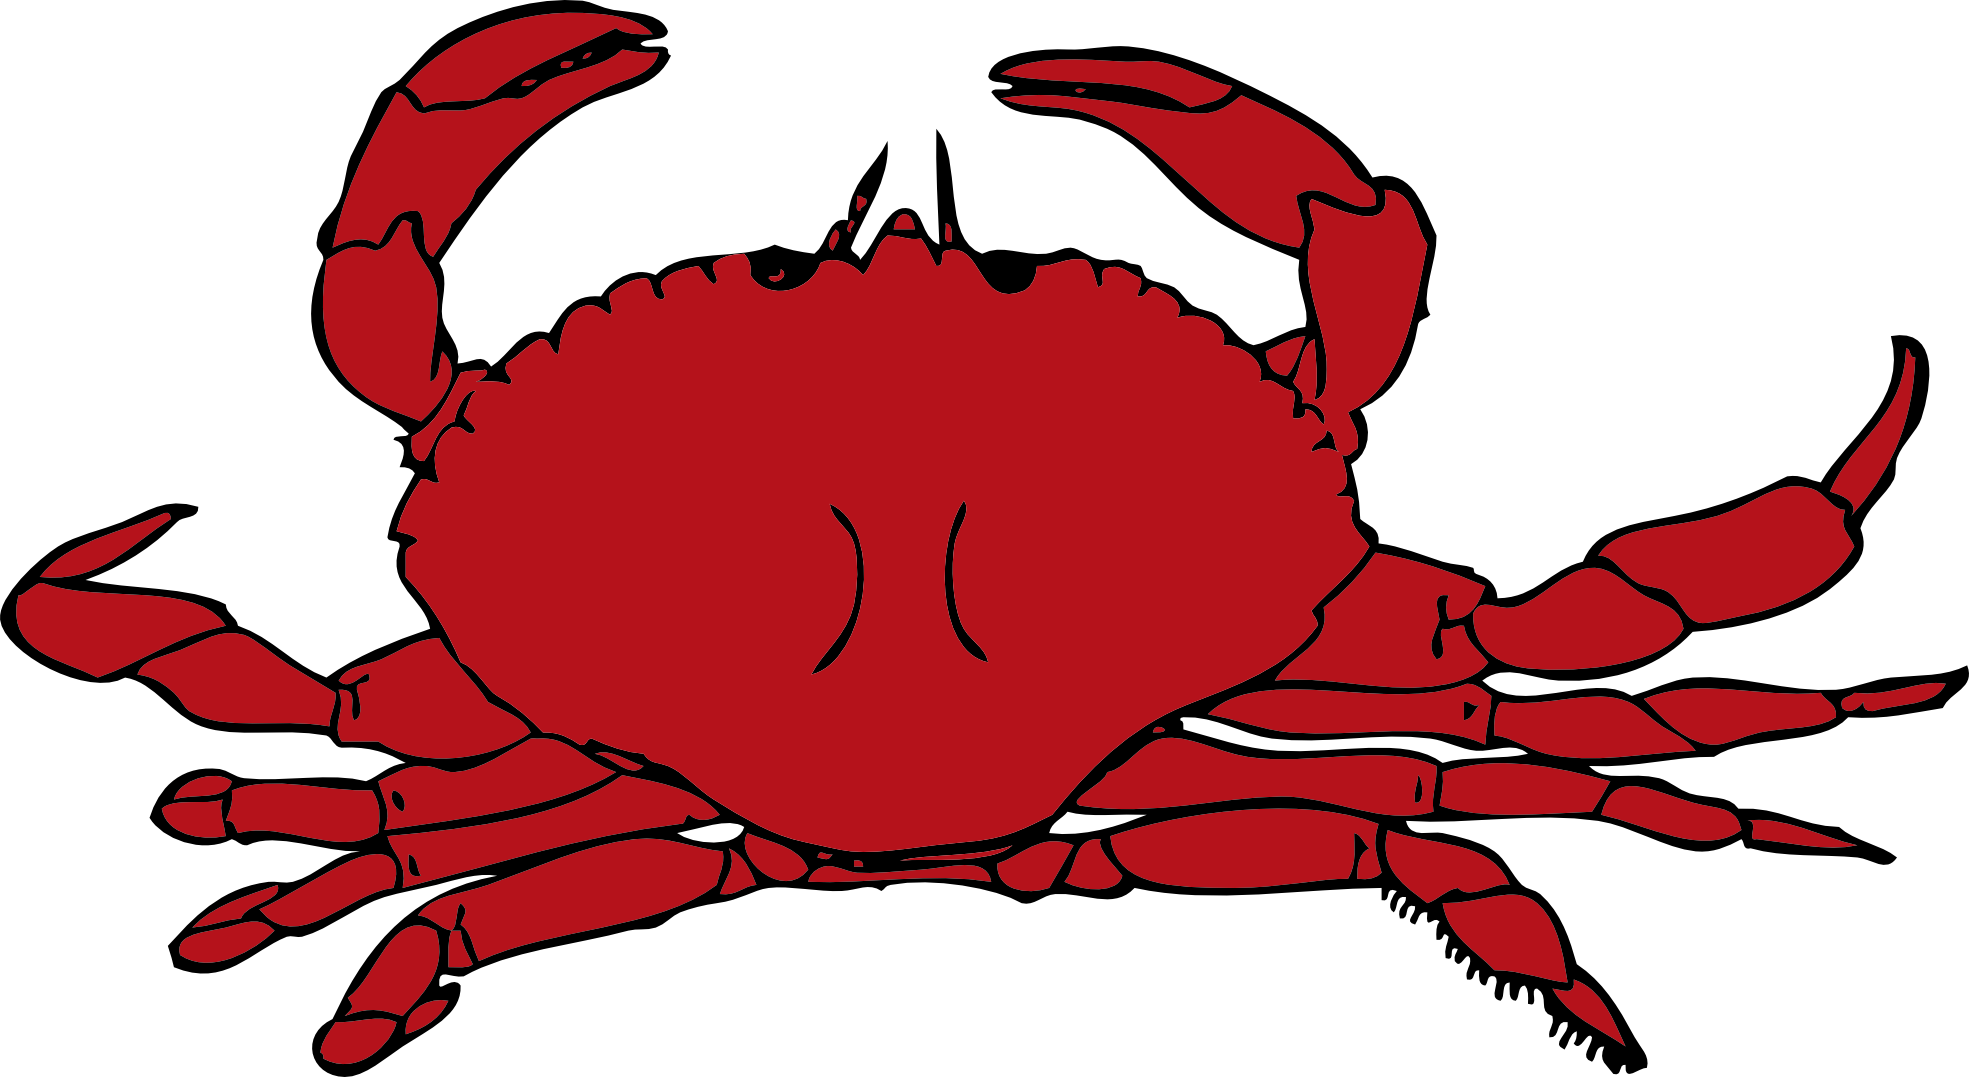 Crab clipart #16, Download drawings